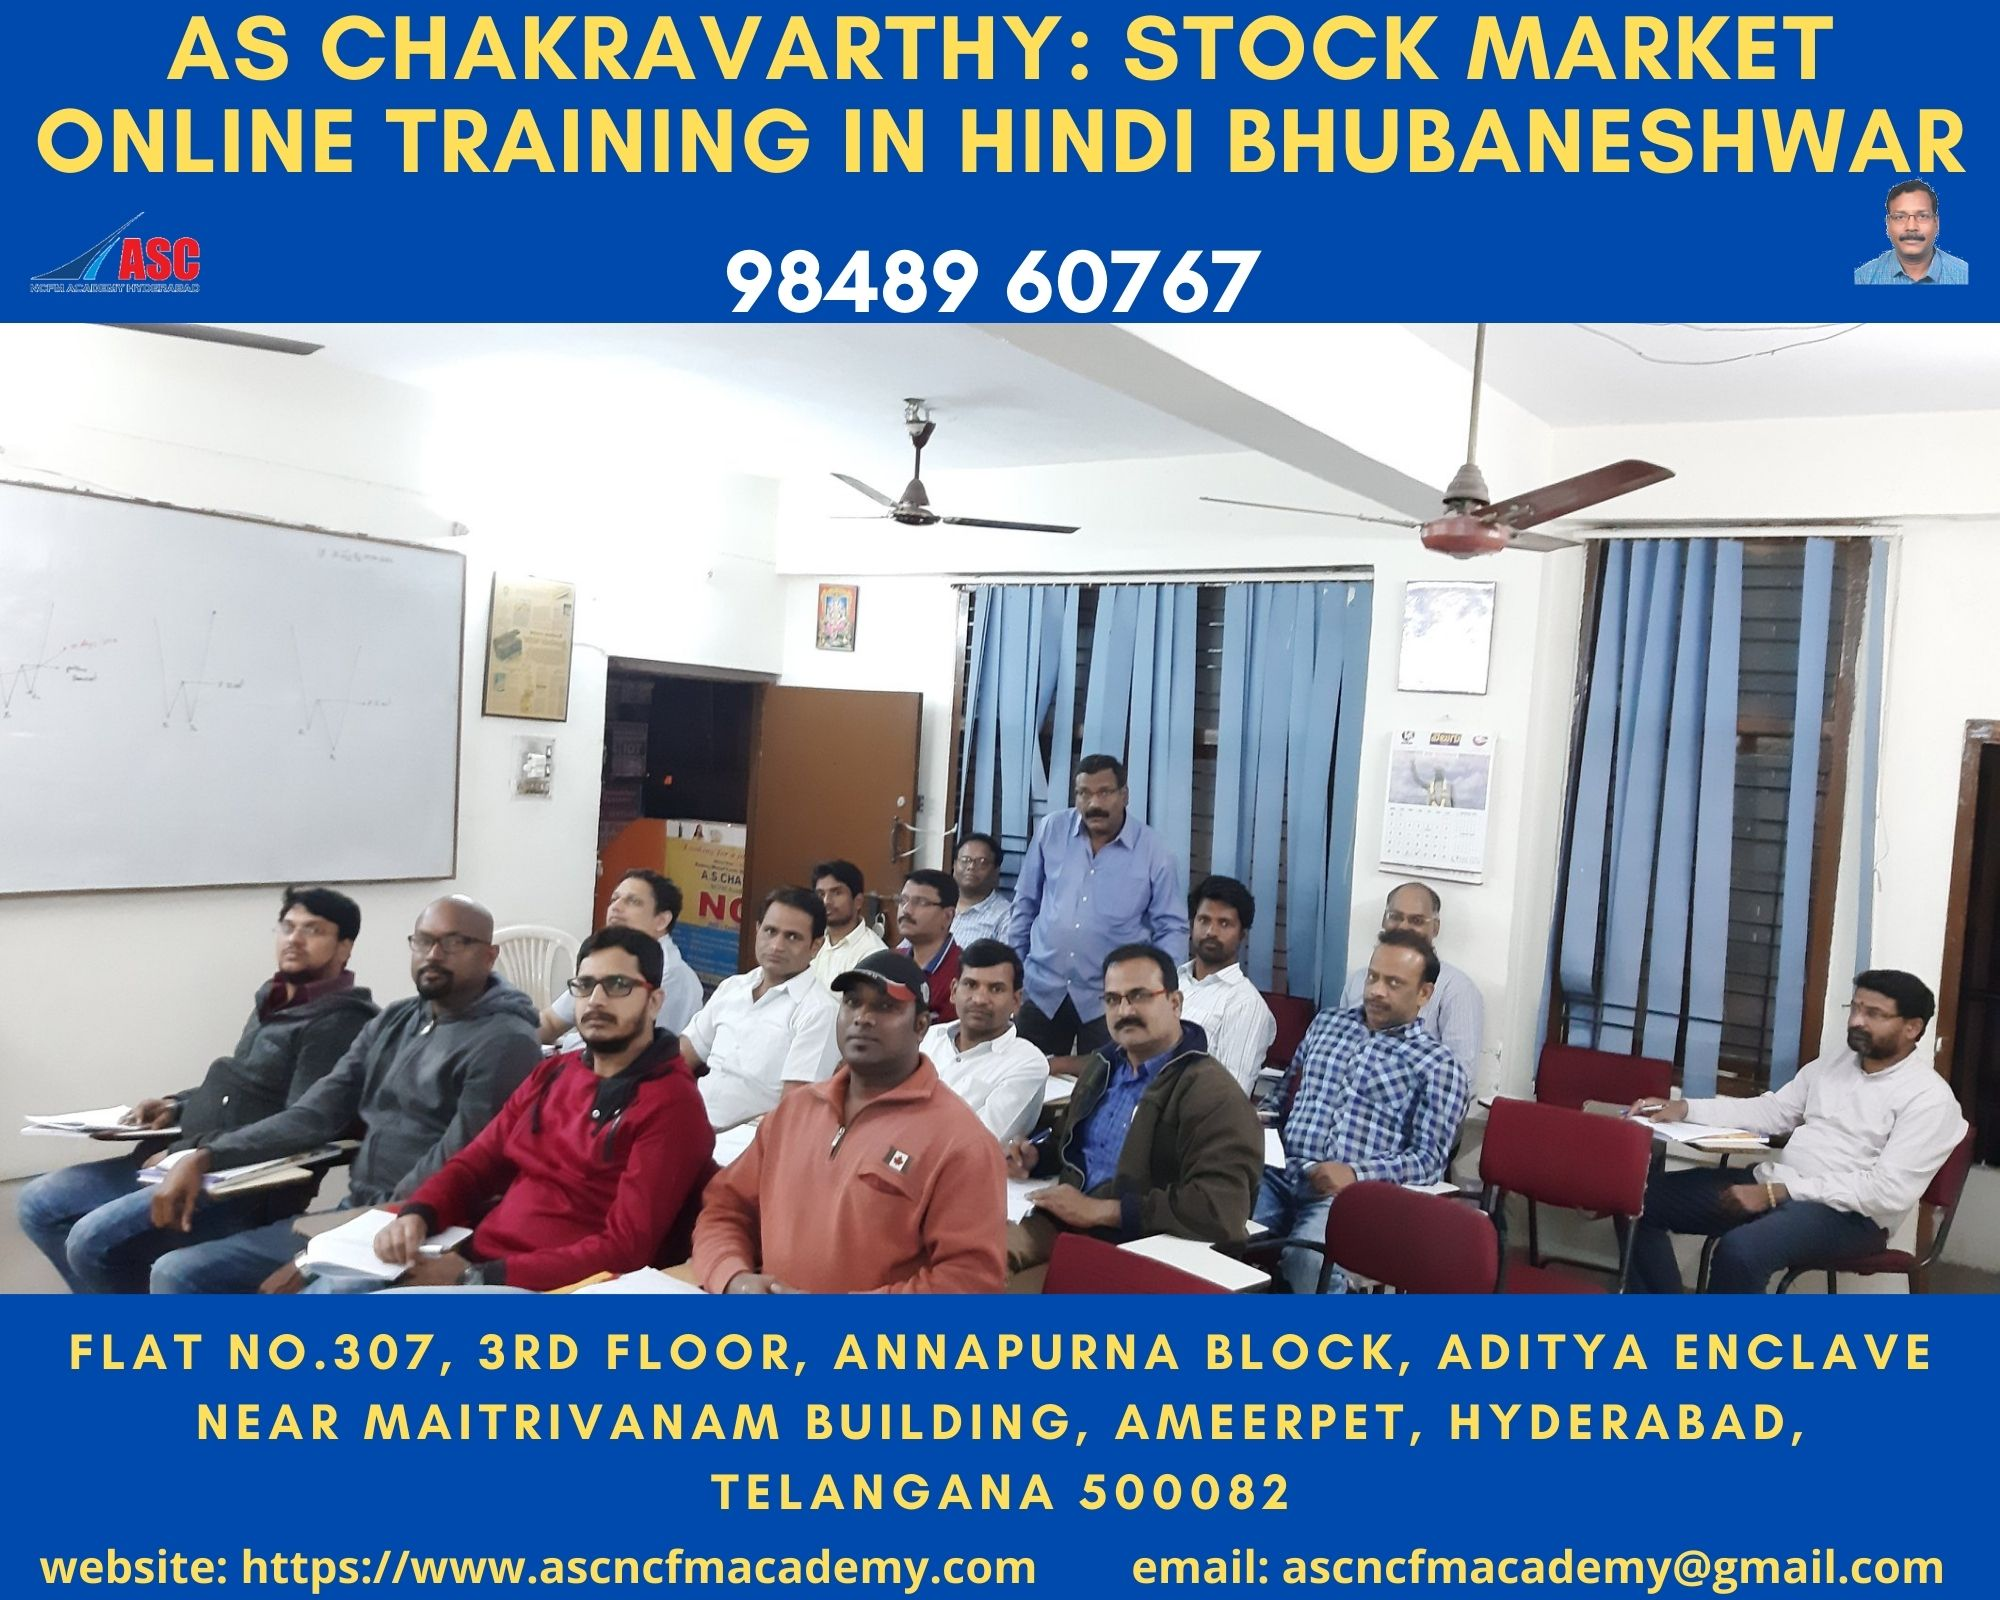 Online Stock Market Technical Training in Hindi Bhubaneshwar